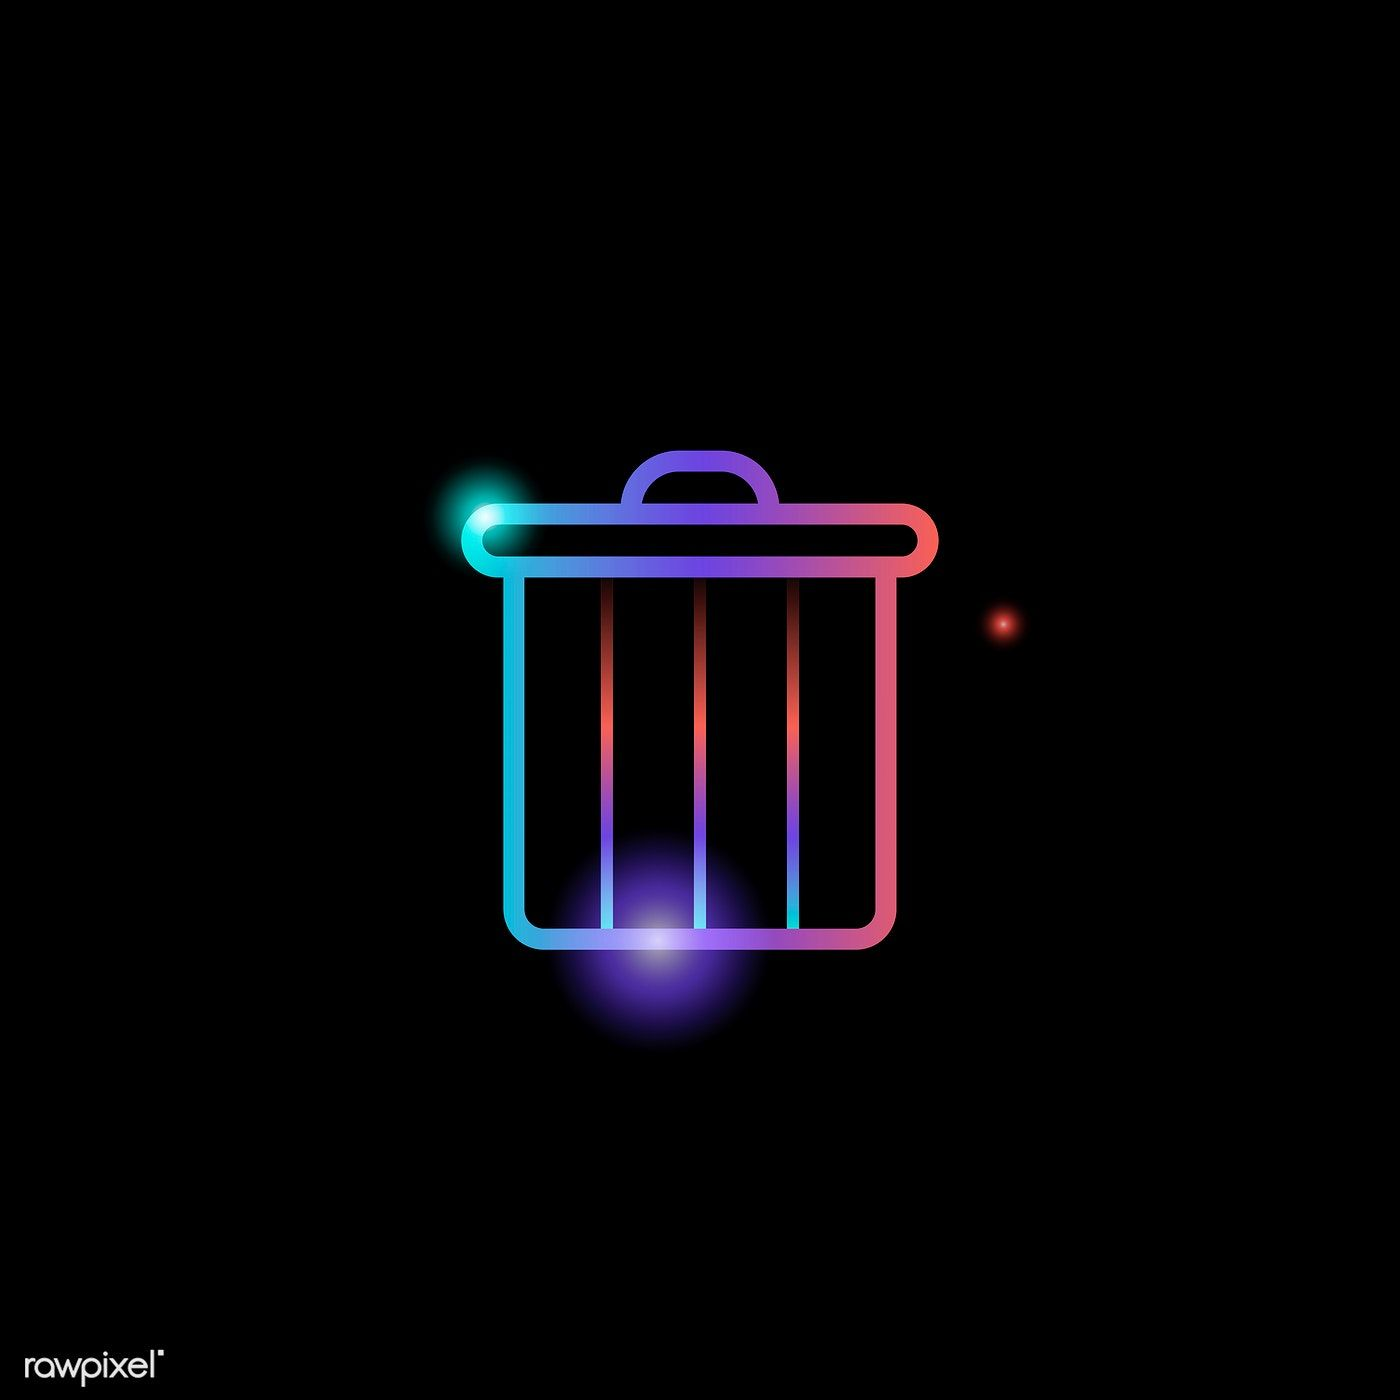 Download Premium Vector Of Delete Bin Social Media Icon Vector 931828 Social Media Icons Vector Social Media Icons Media Icon